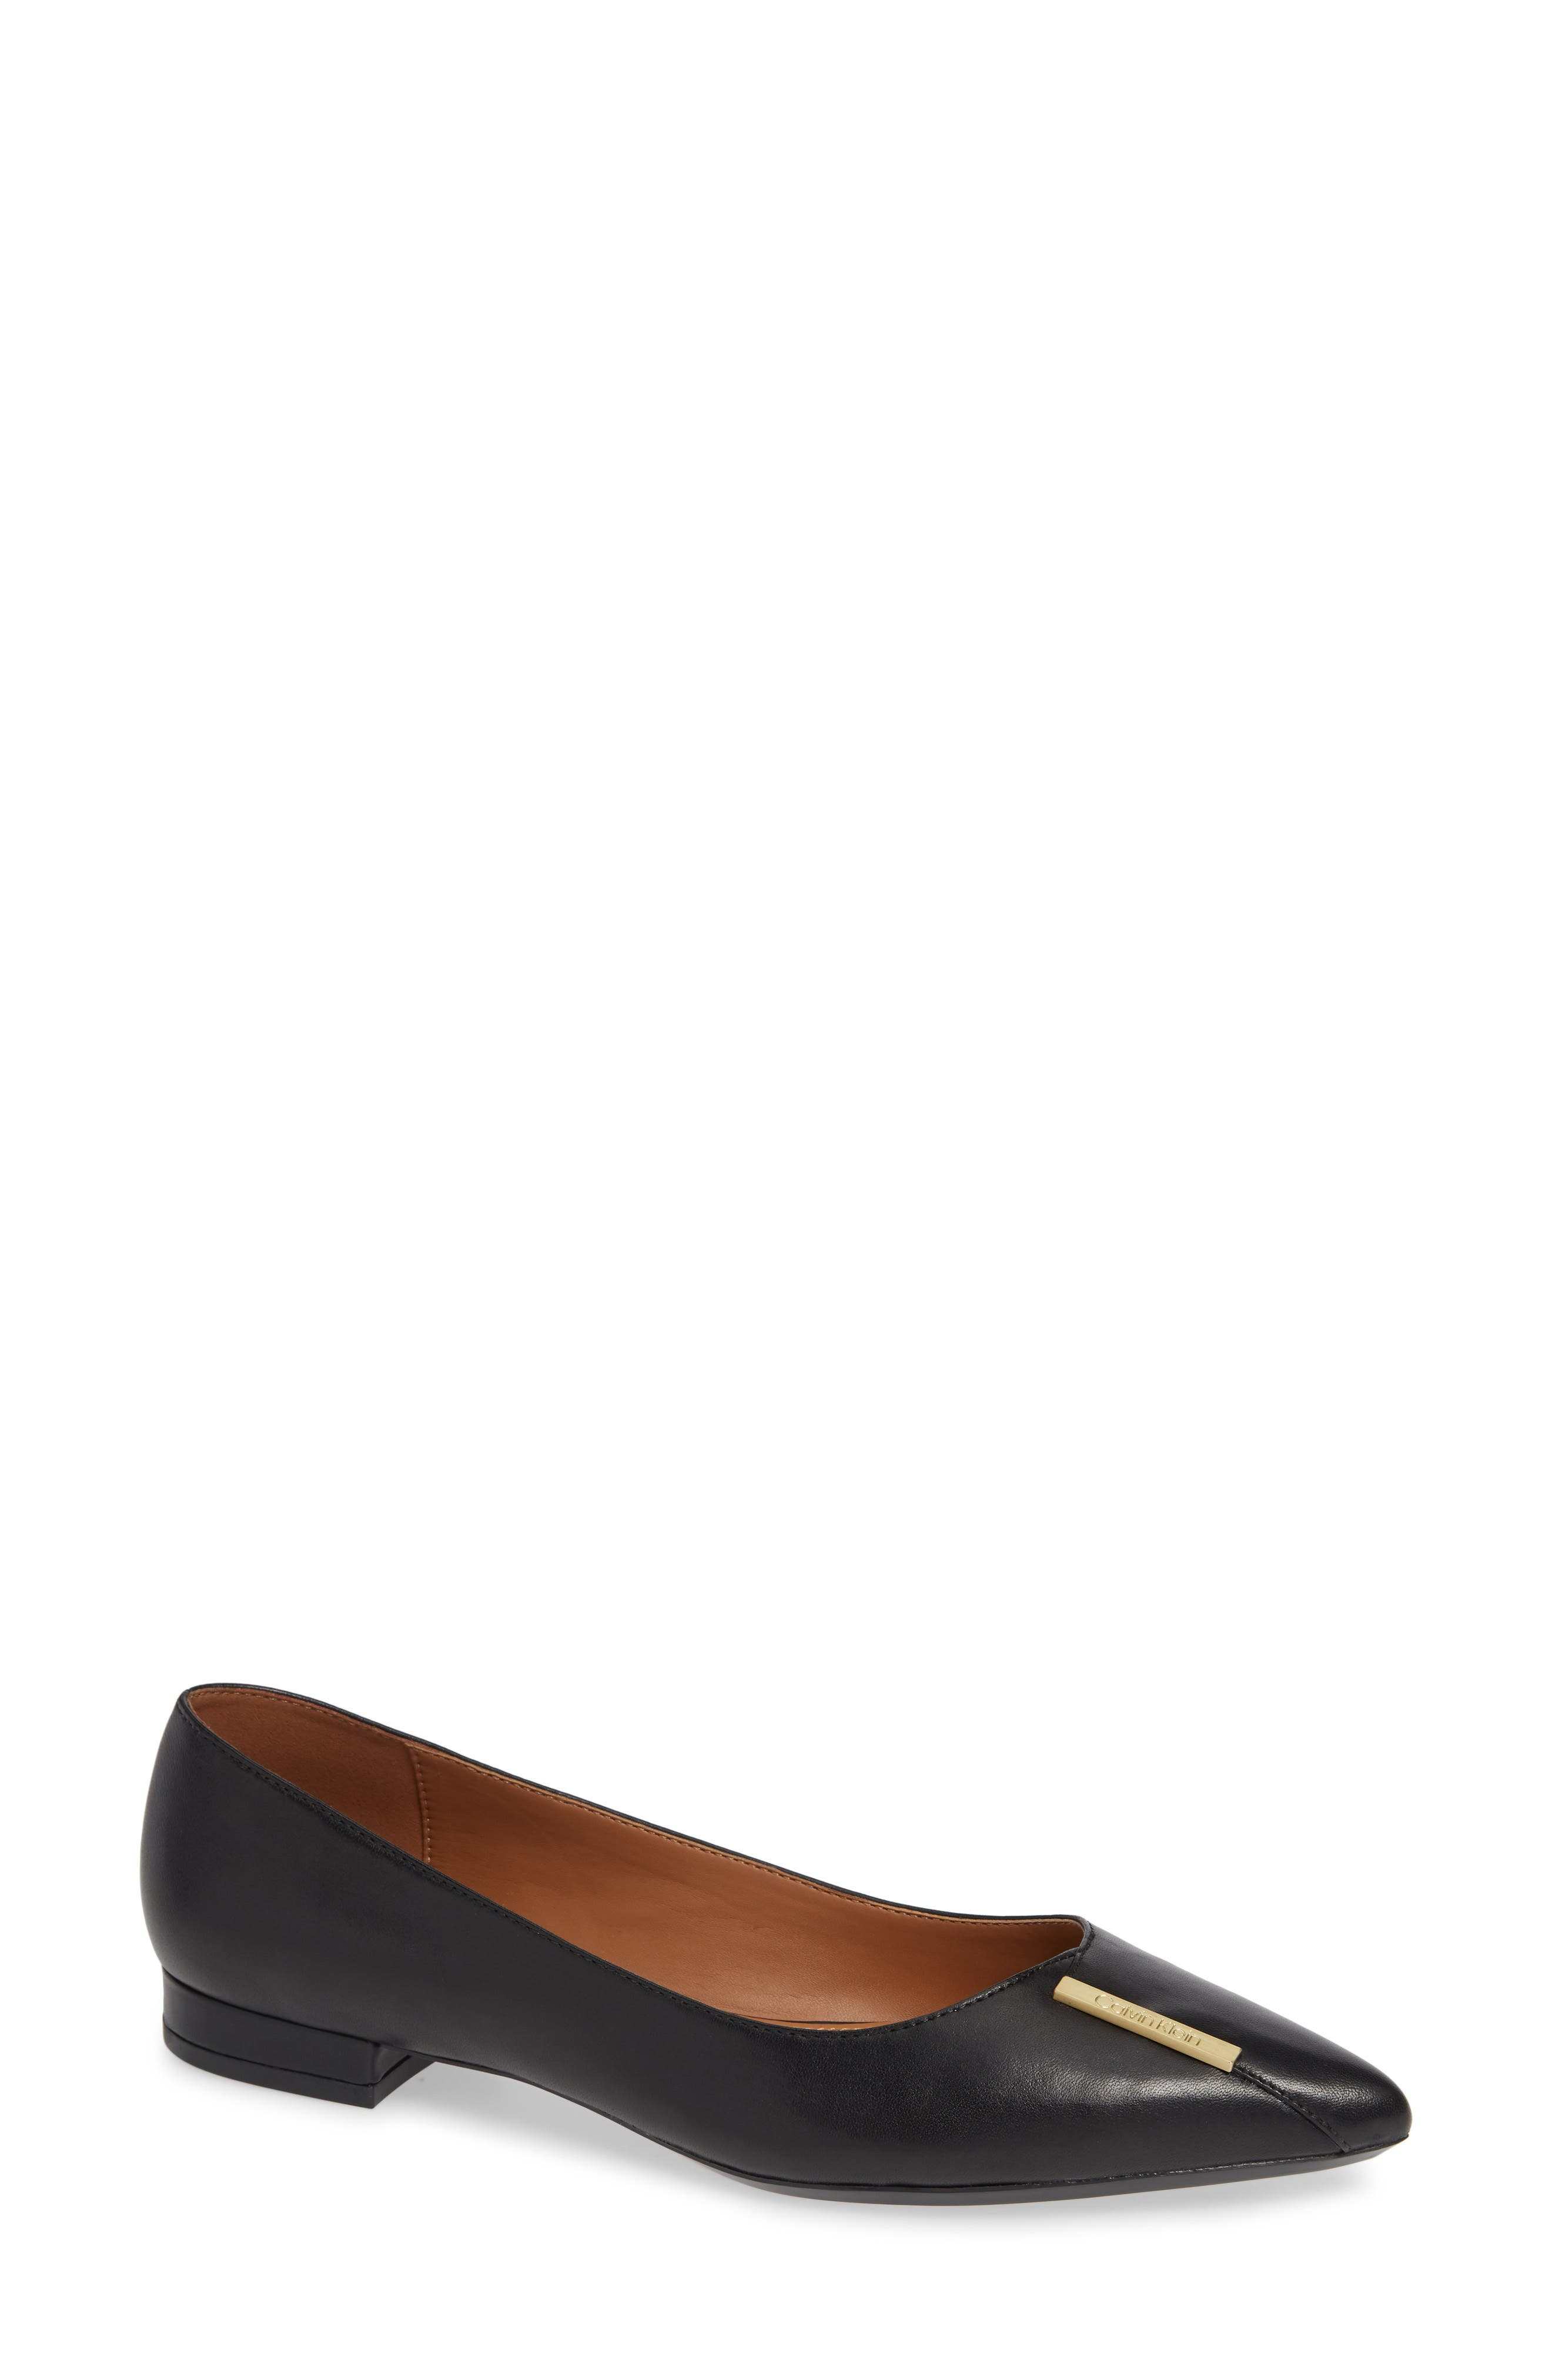 CALVIN KLEIN Arline Pointy Toe Flat, Main, color, BLACK LEATHER